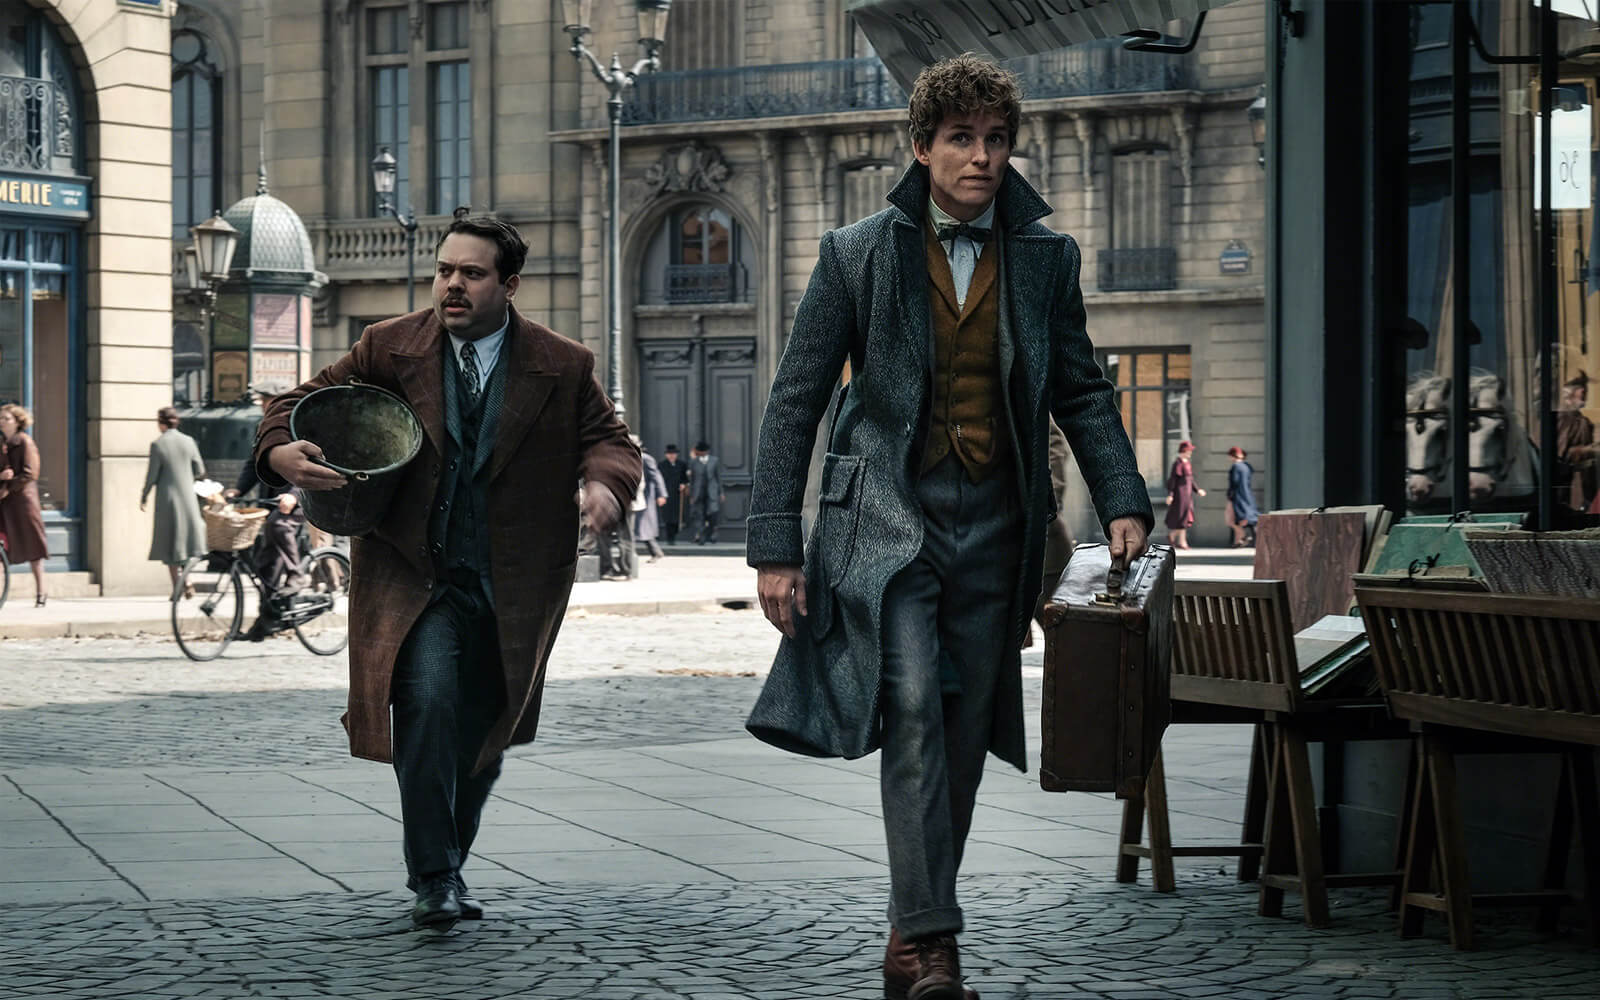 Jacob Fogler and Eddie Redmayne in FANTASTIC BEASTS: THE CRIMES OF GRINDELWALD (2018)